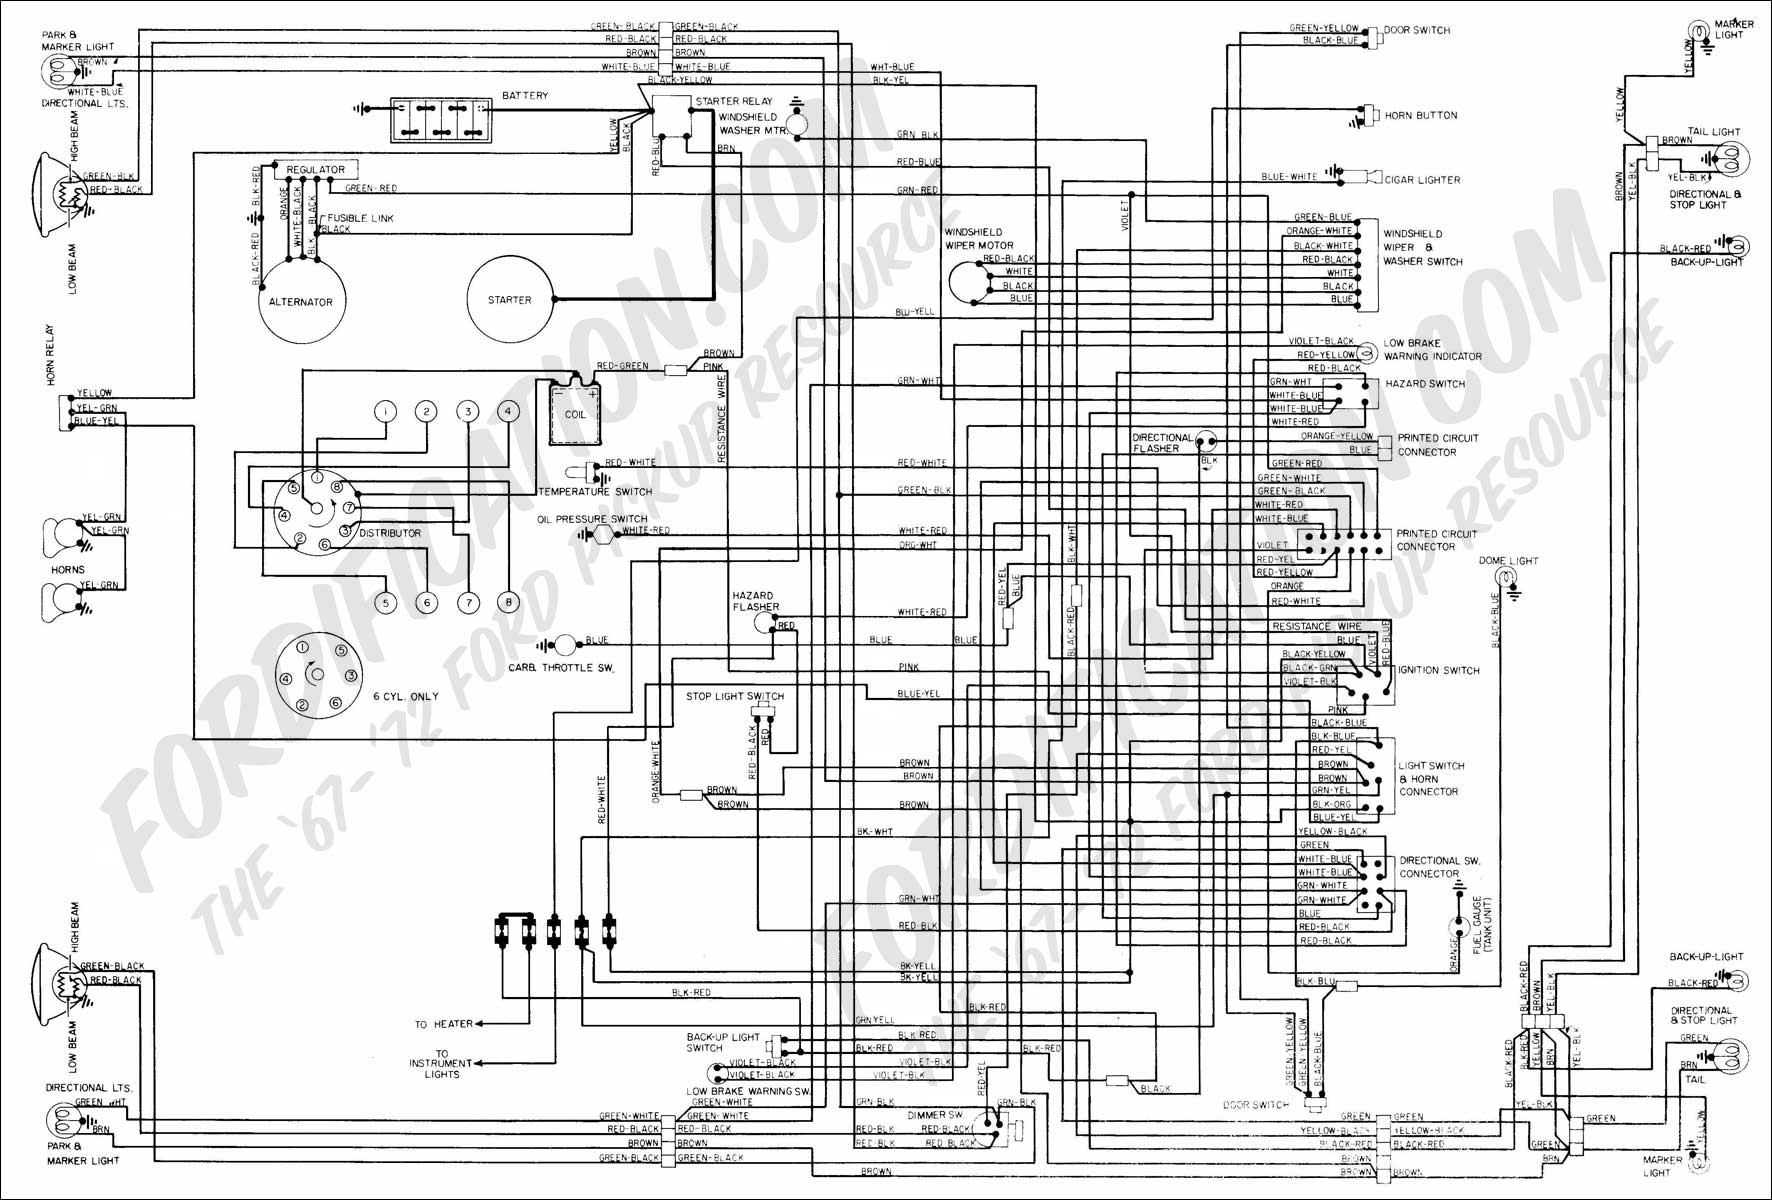 2008 ford truck wiring diagrams detailed schematics diagram rh  antonartgallery com Chevy Ignition Switch Wiring Diagram Lawn Mower  Ignition Switch Wiring ...